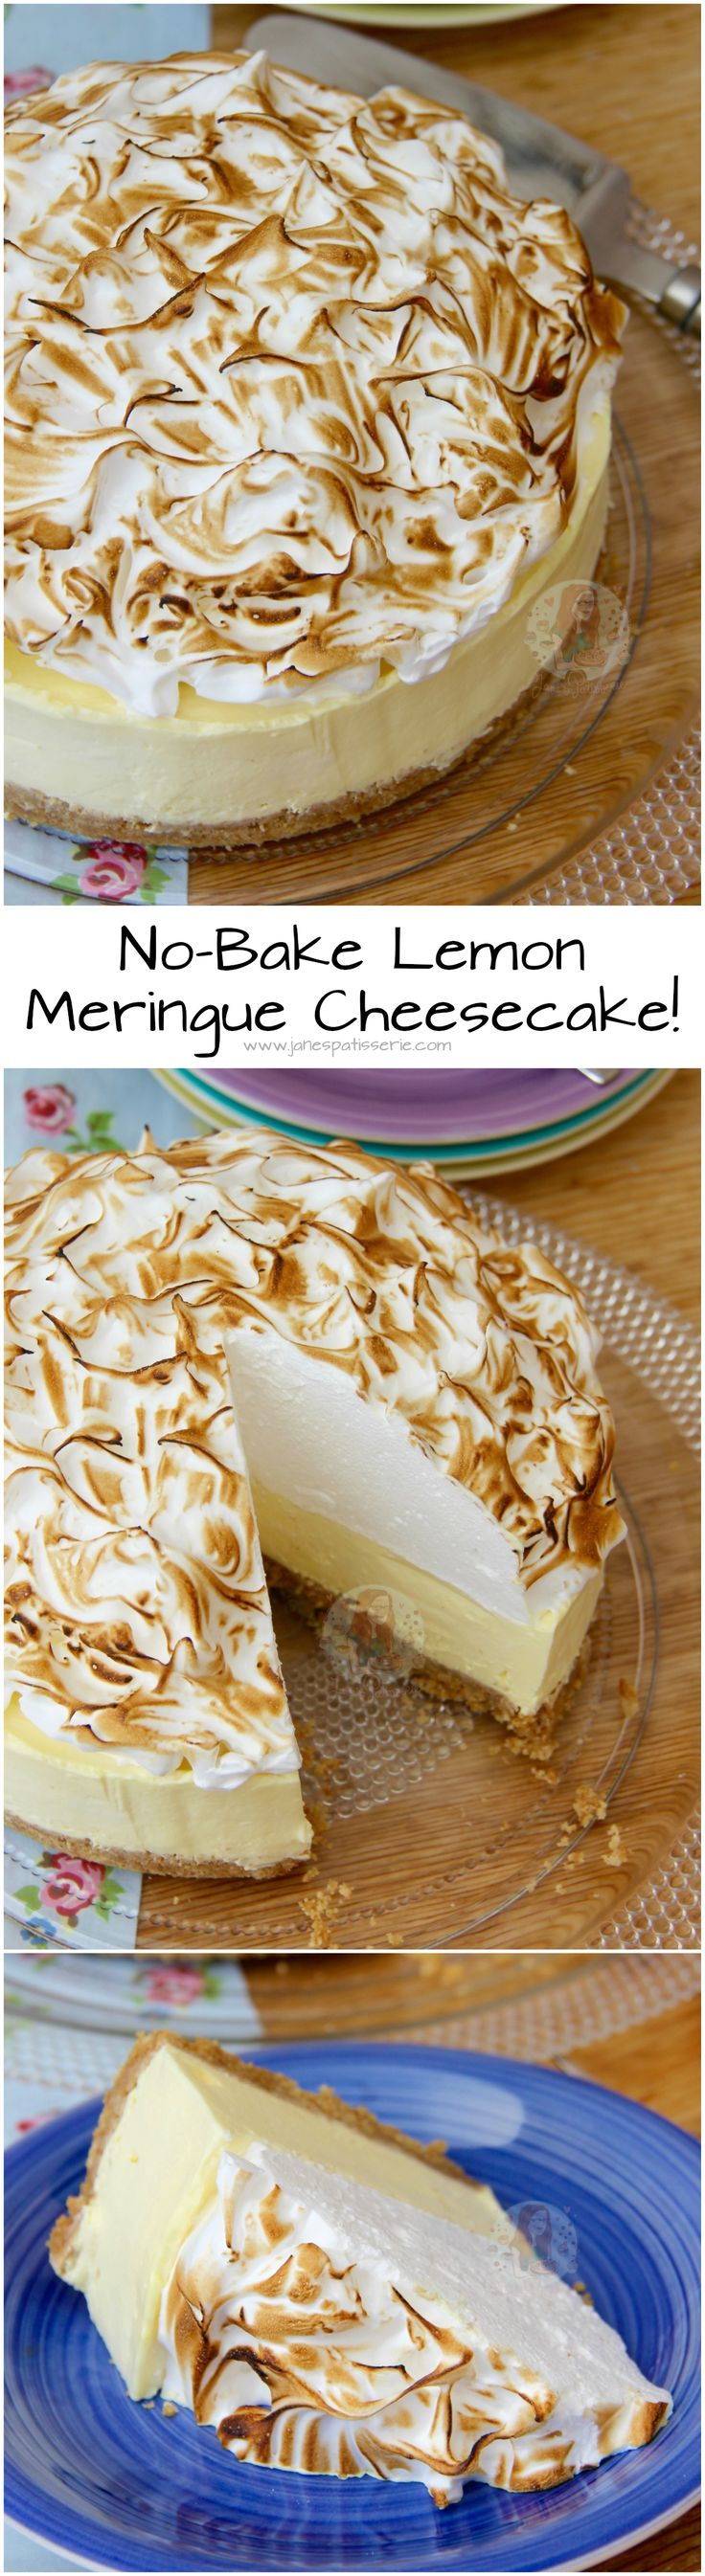 No-Bake Lemon Meringue Cheesecake! ❤️ A Buttery Biscuit Base, Smooth Lemon…